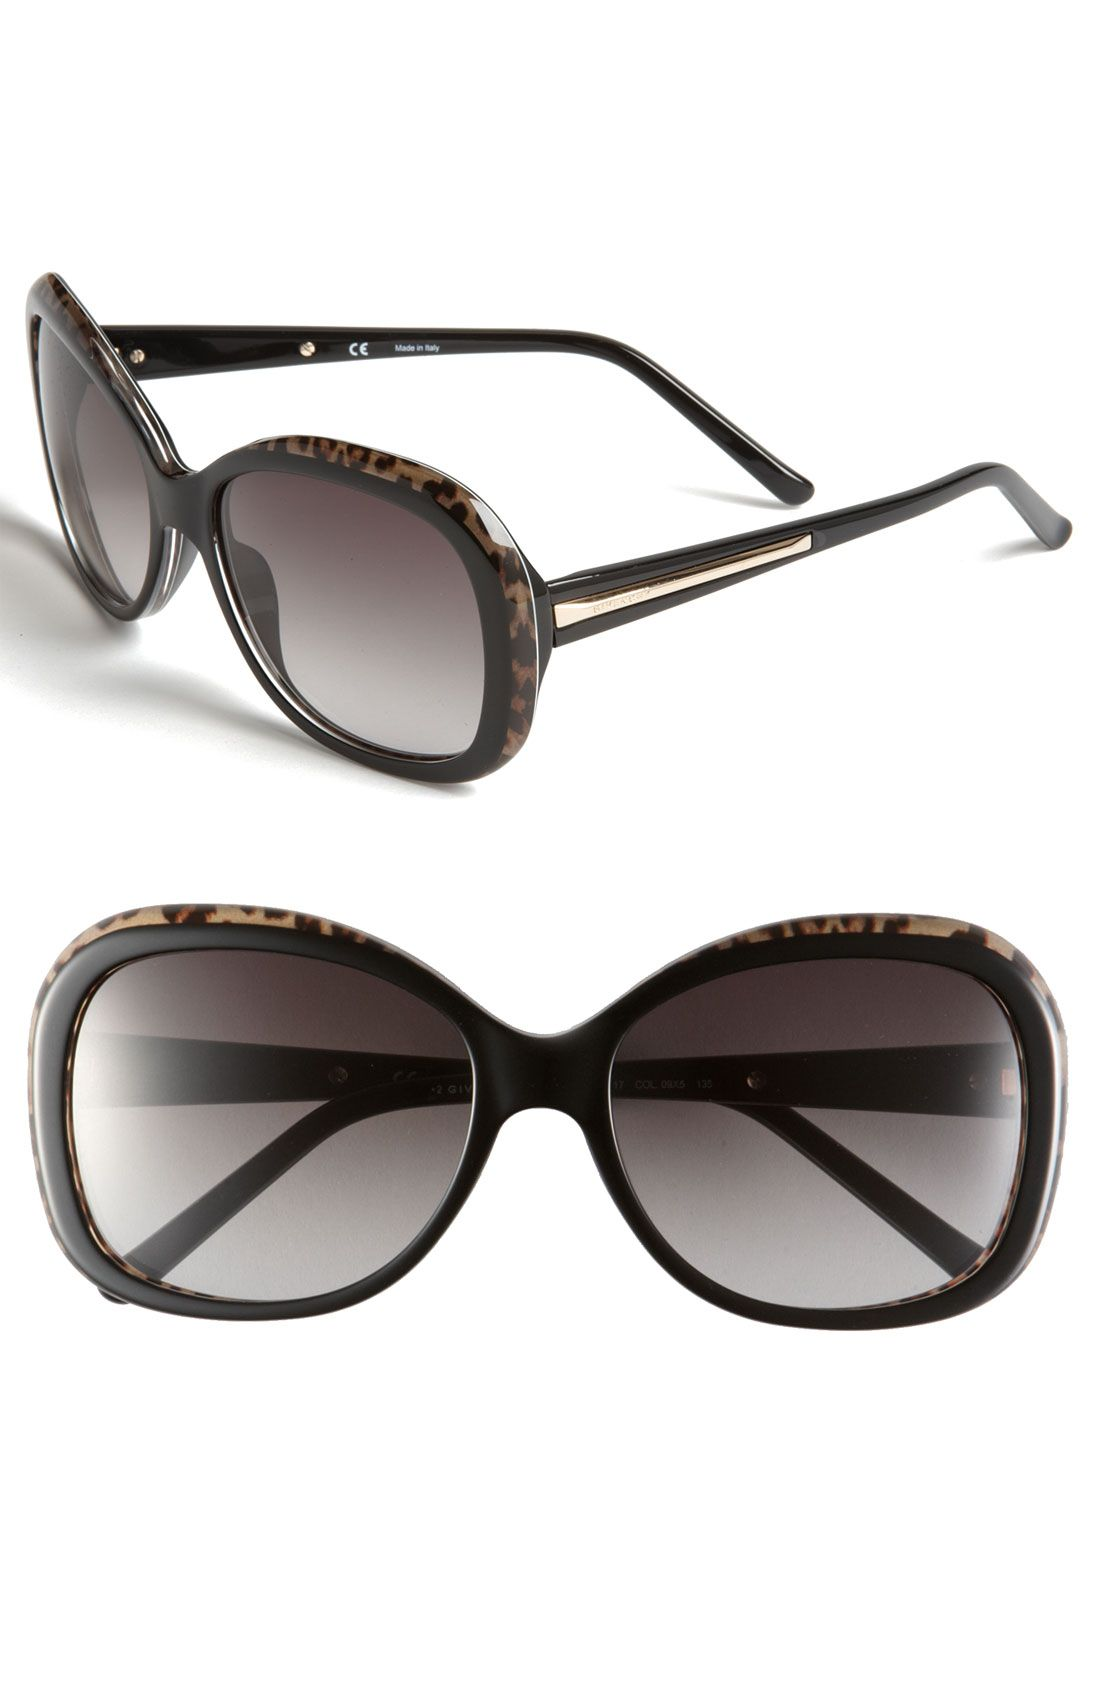 Givenchy Round Sunglasses in Black (black leopard/ gradient grey)